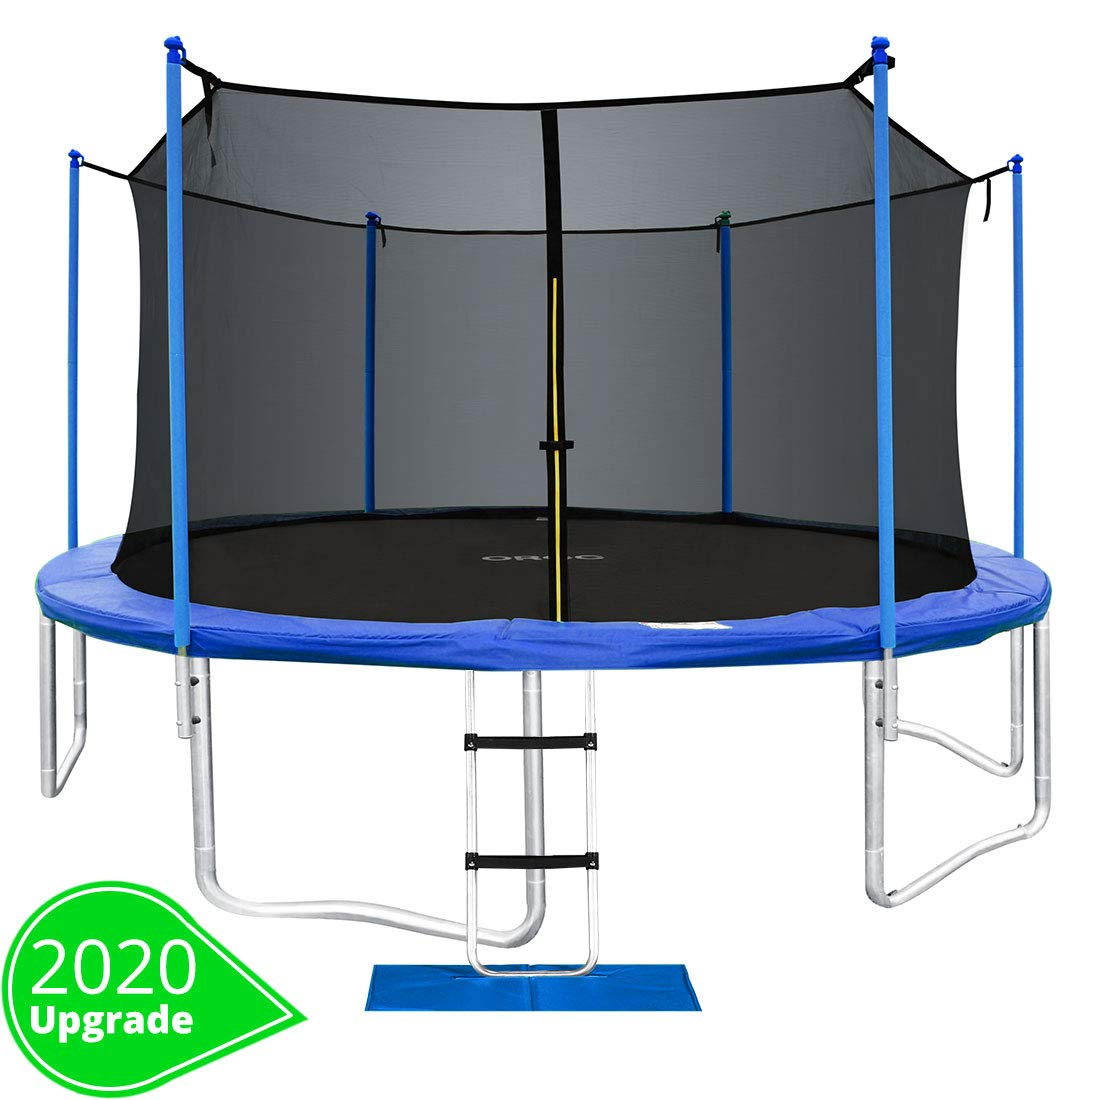 ORCC New Upgrade 15 14 12 10 FT Trampoline with Safety Enclosure Net Wind Stakes Rain Cover Ladder,Outdoor Trampoline with TUV Certificated,Best Gift for Kids by ORCC (Image #1)